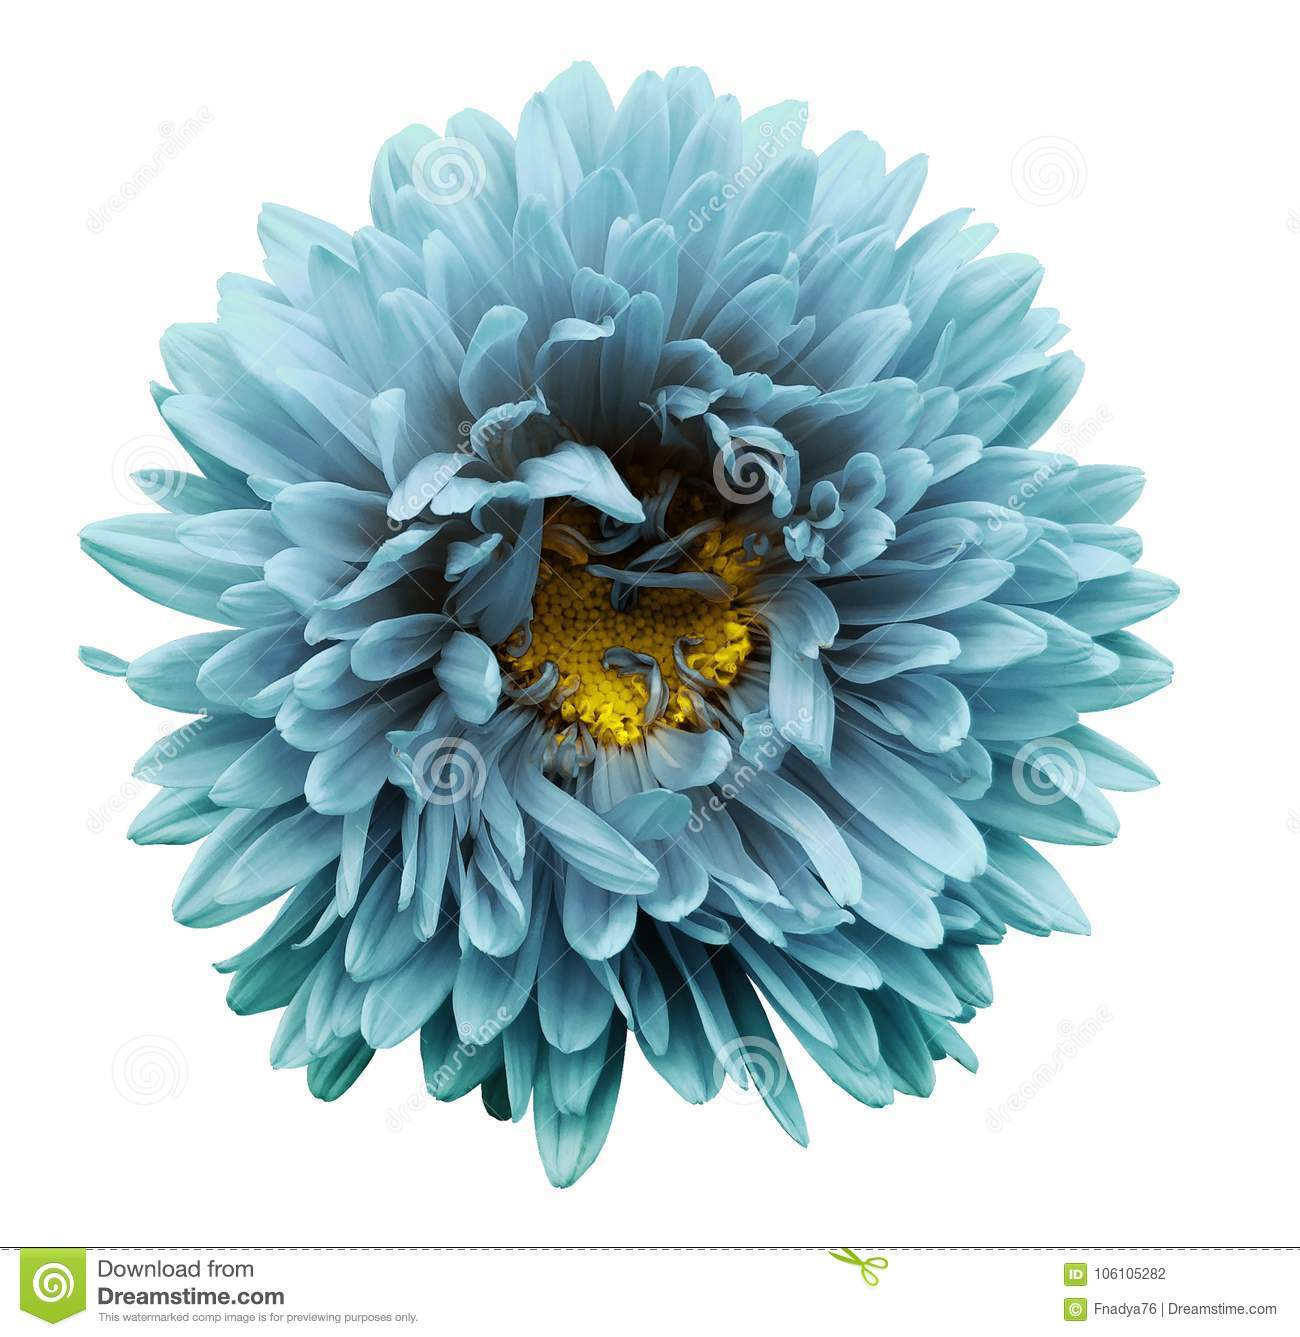 Turquoise Flower Aster On A White Isolated Background With Clipping